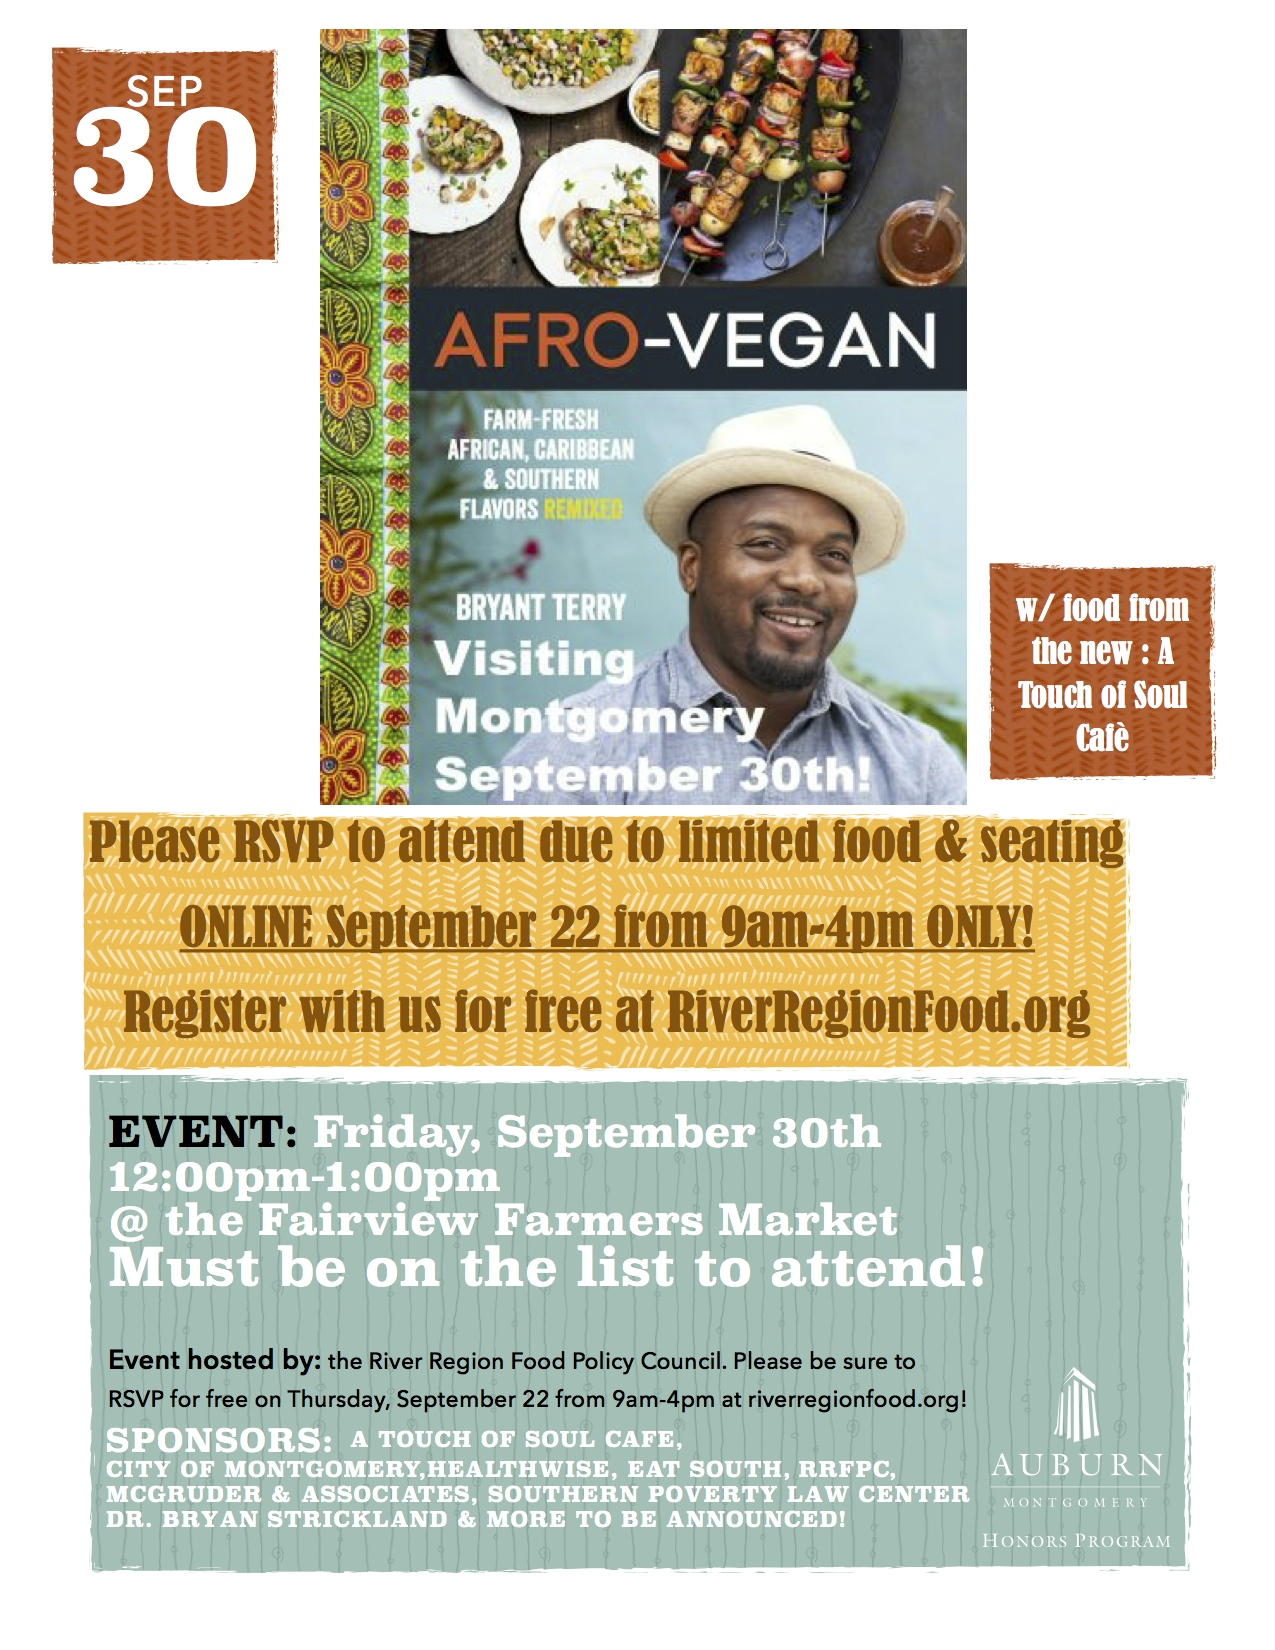 Afro-Vegan Chef Bryant Terry Montgomery Event Poster